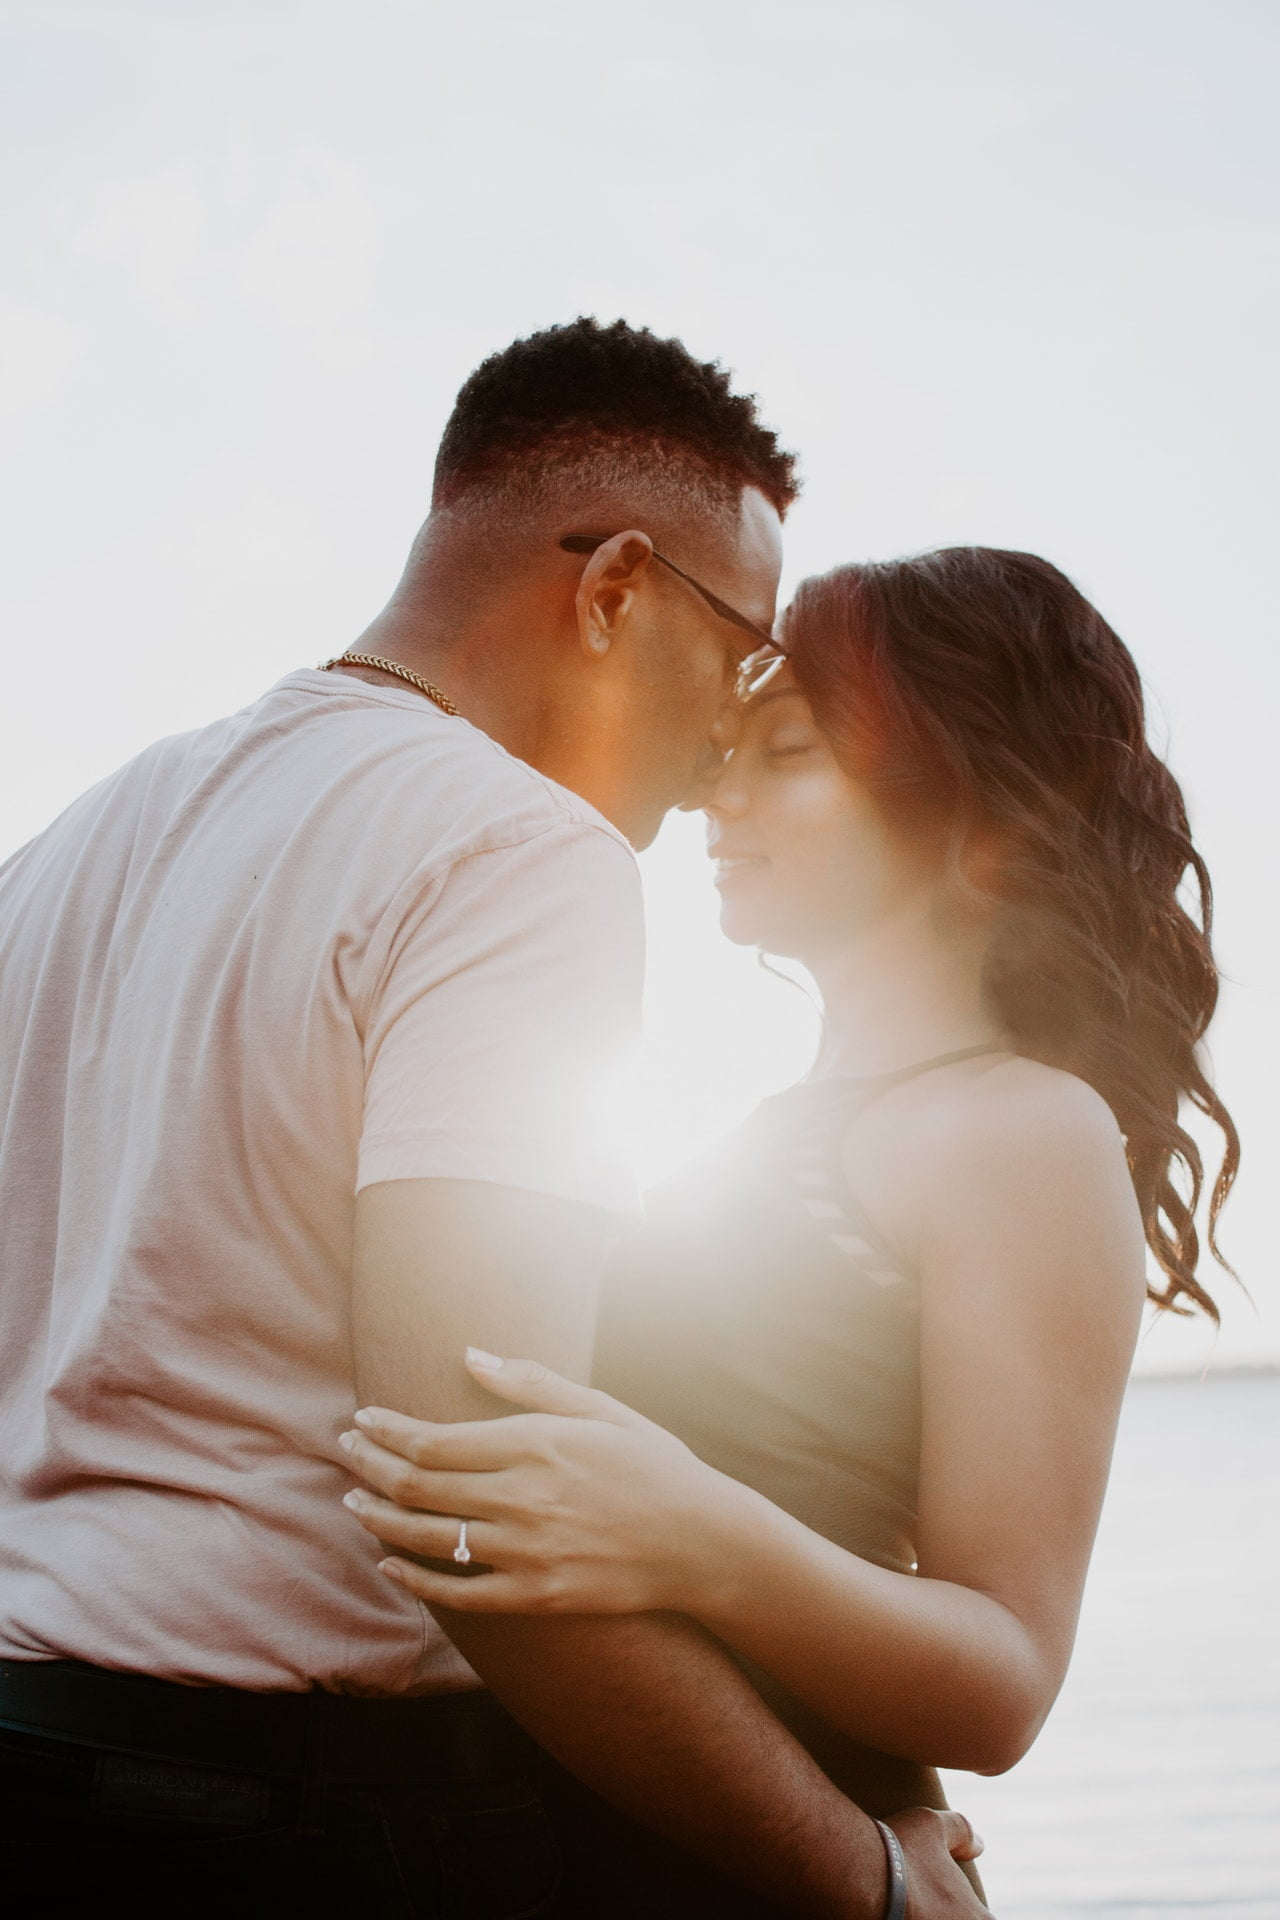 Should you take engagement photos